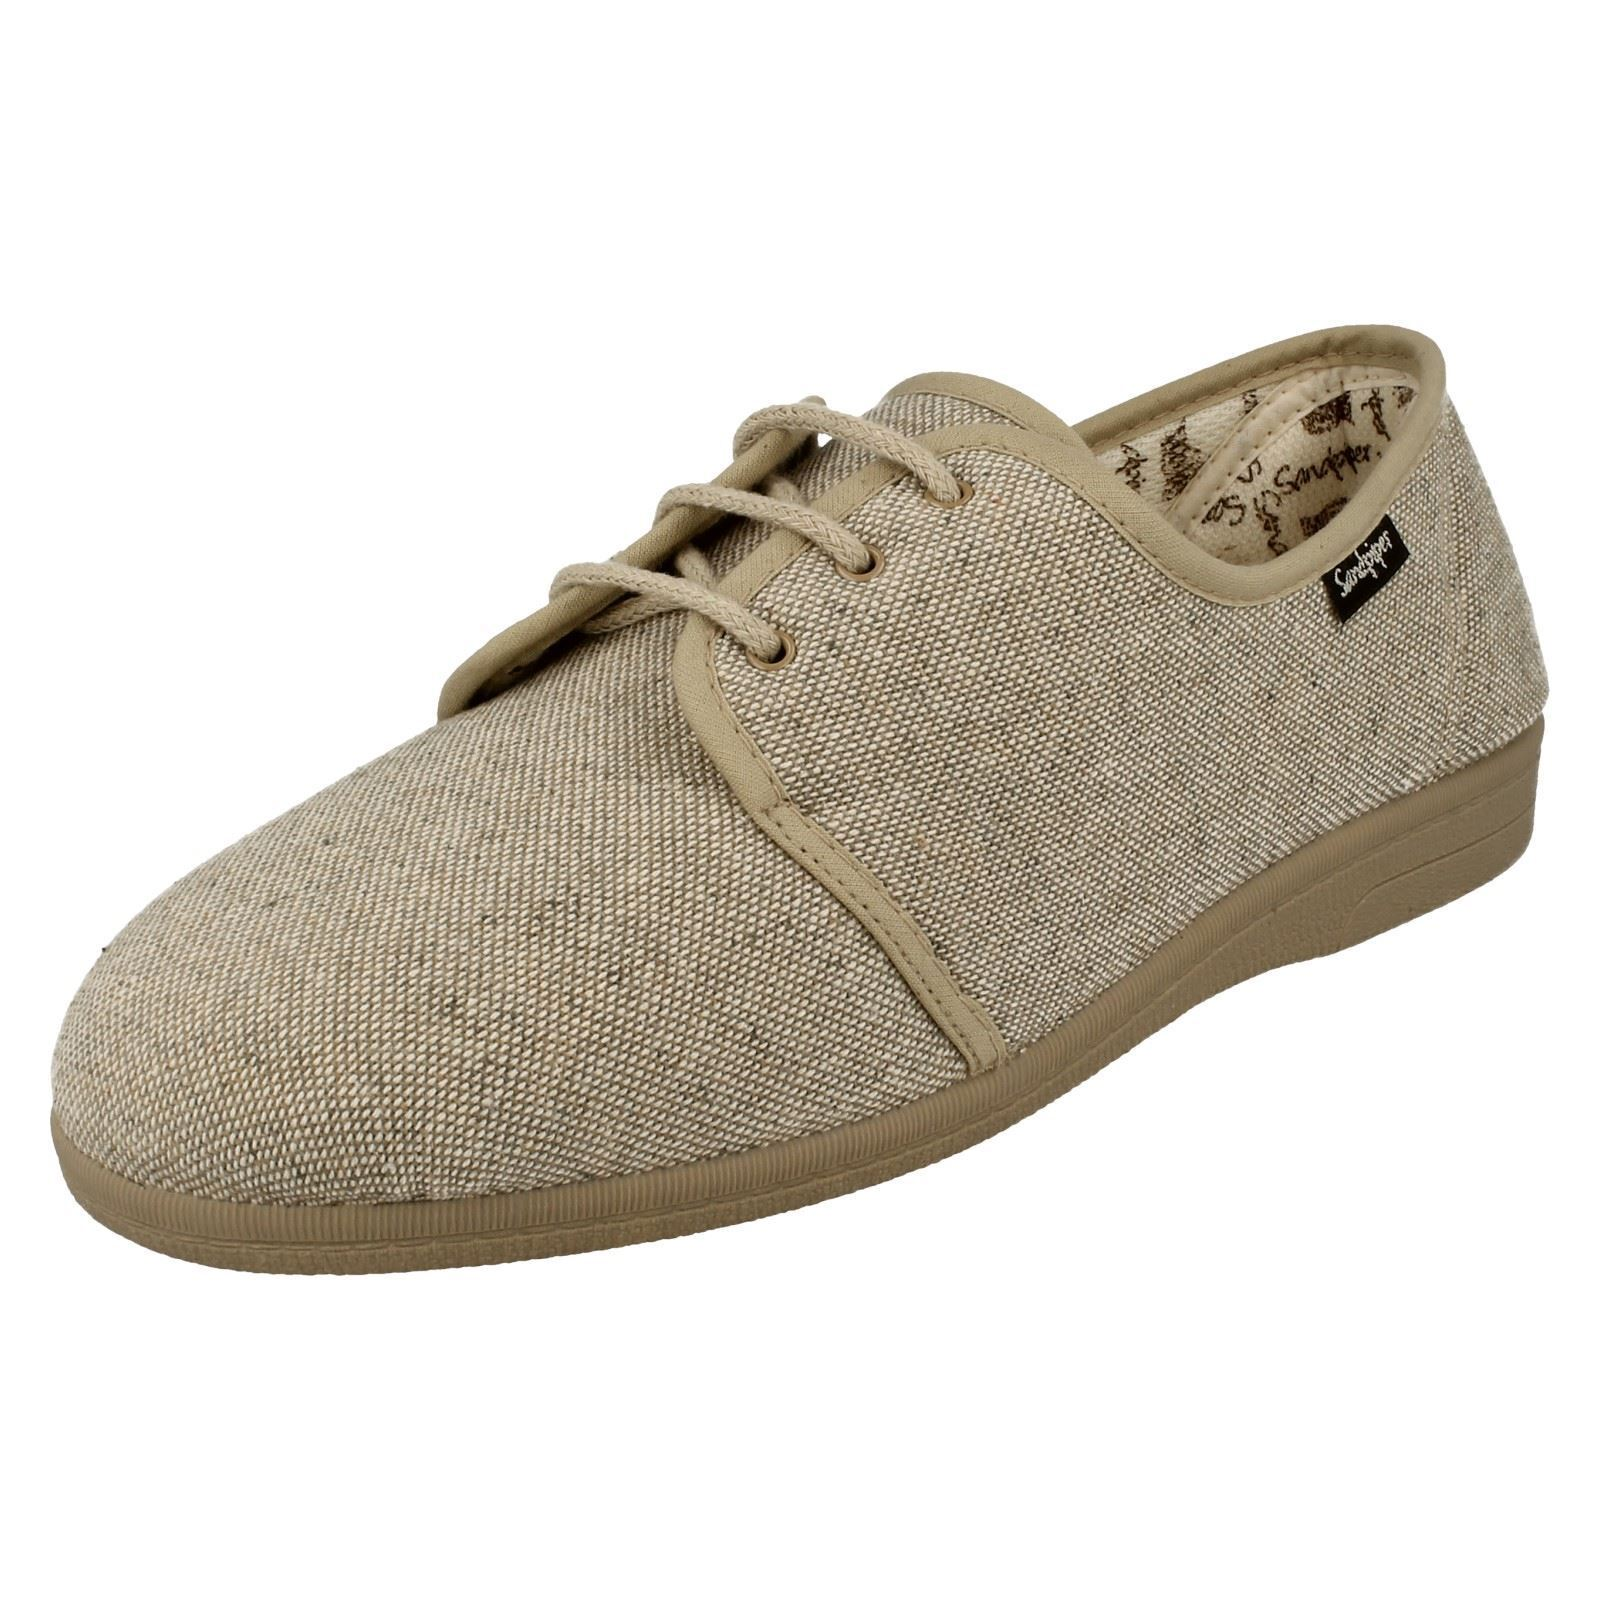 Mens Sandpiper Lace Up Casual shoes - Kevin